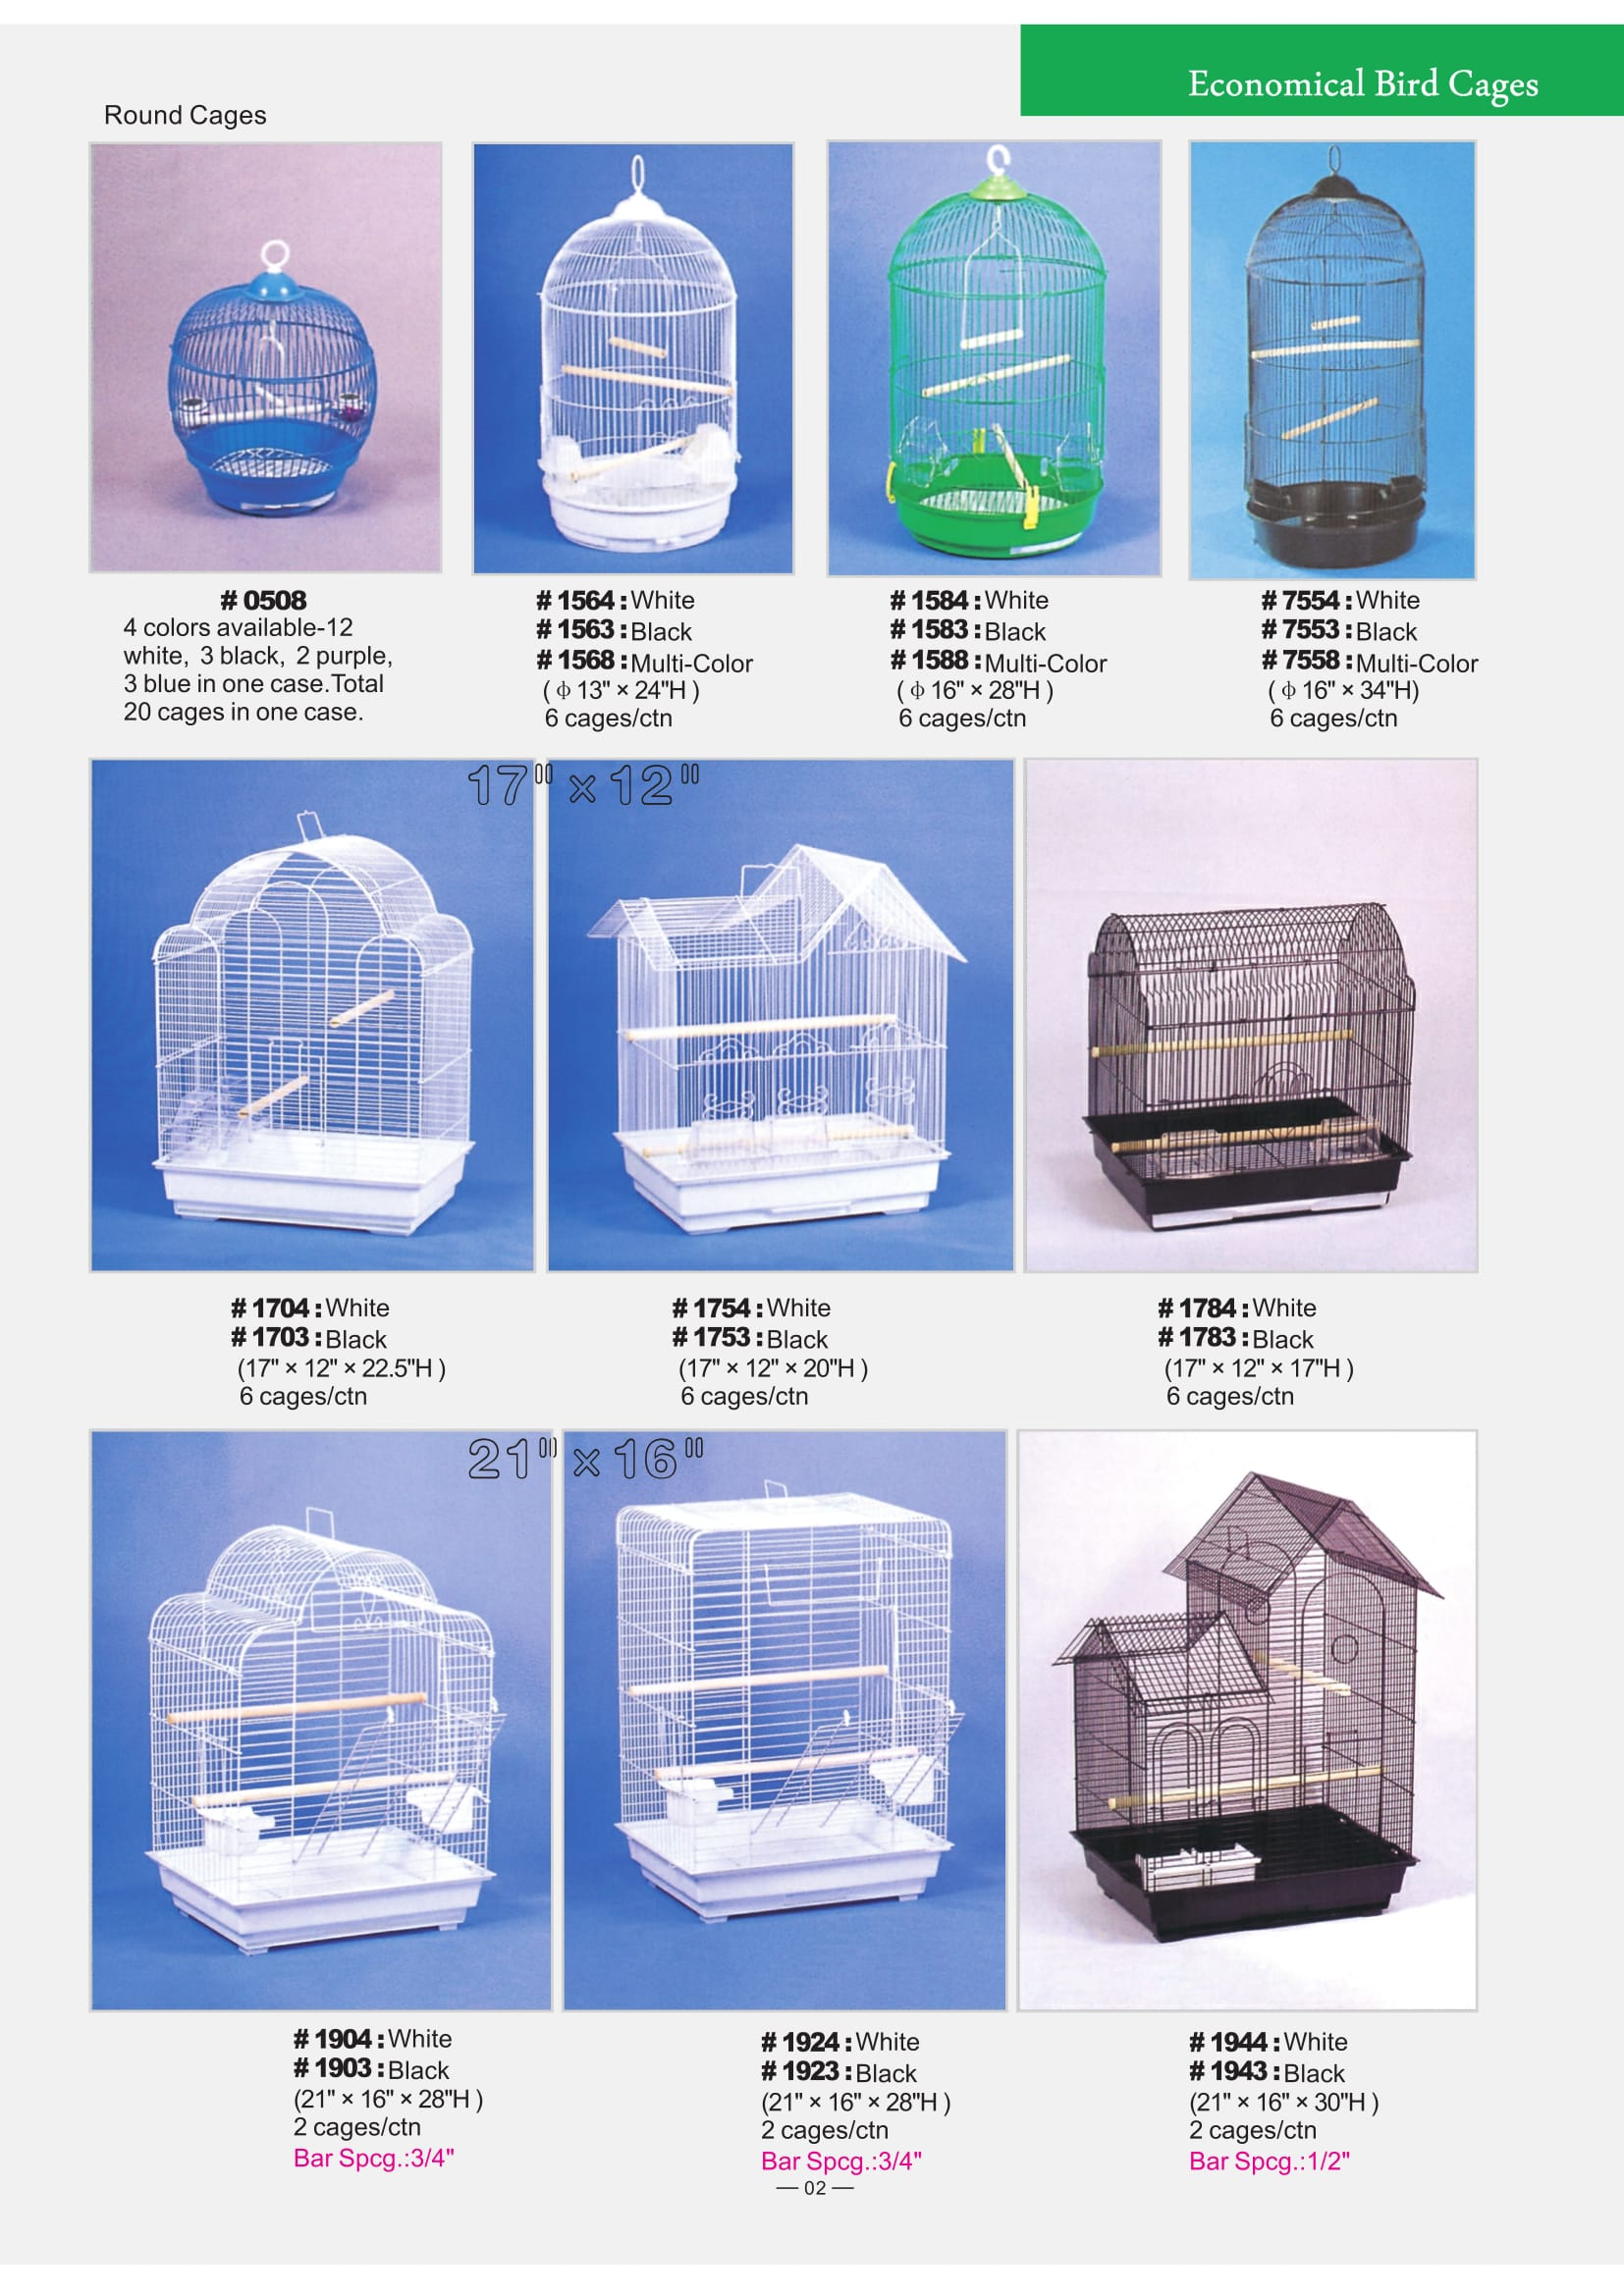 2. Economical Bird Cages Part 1-2